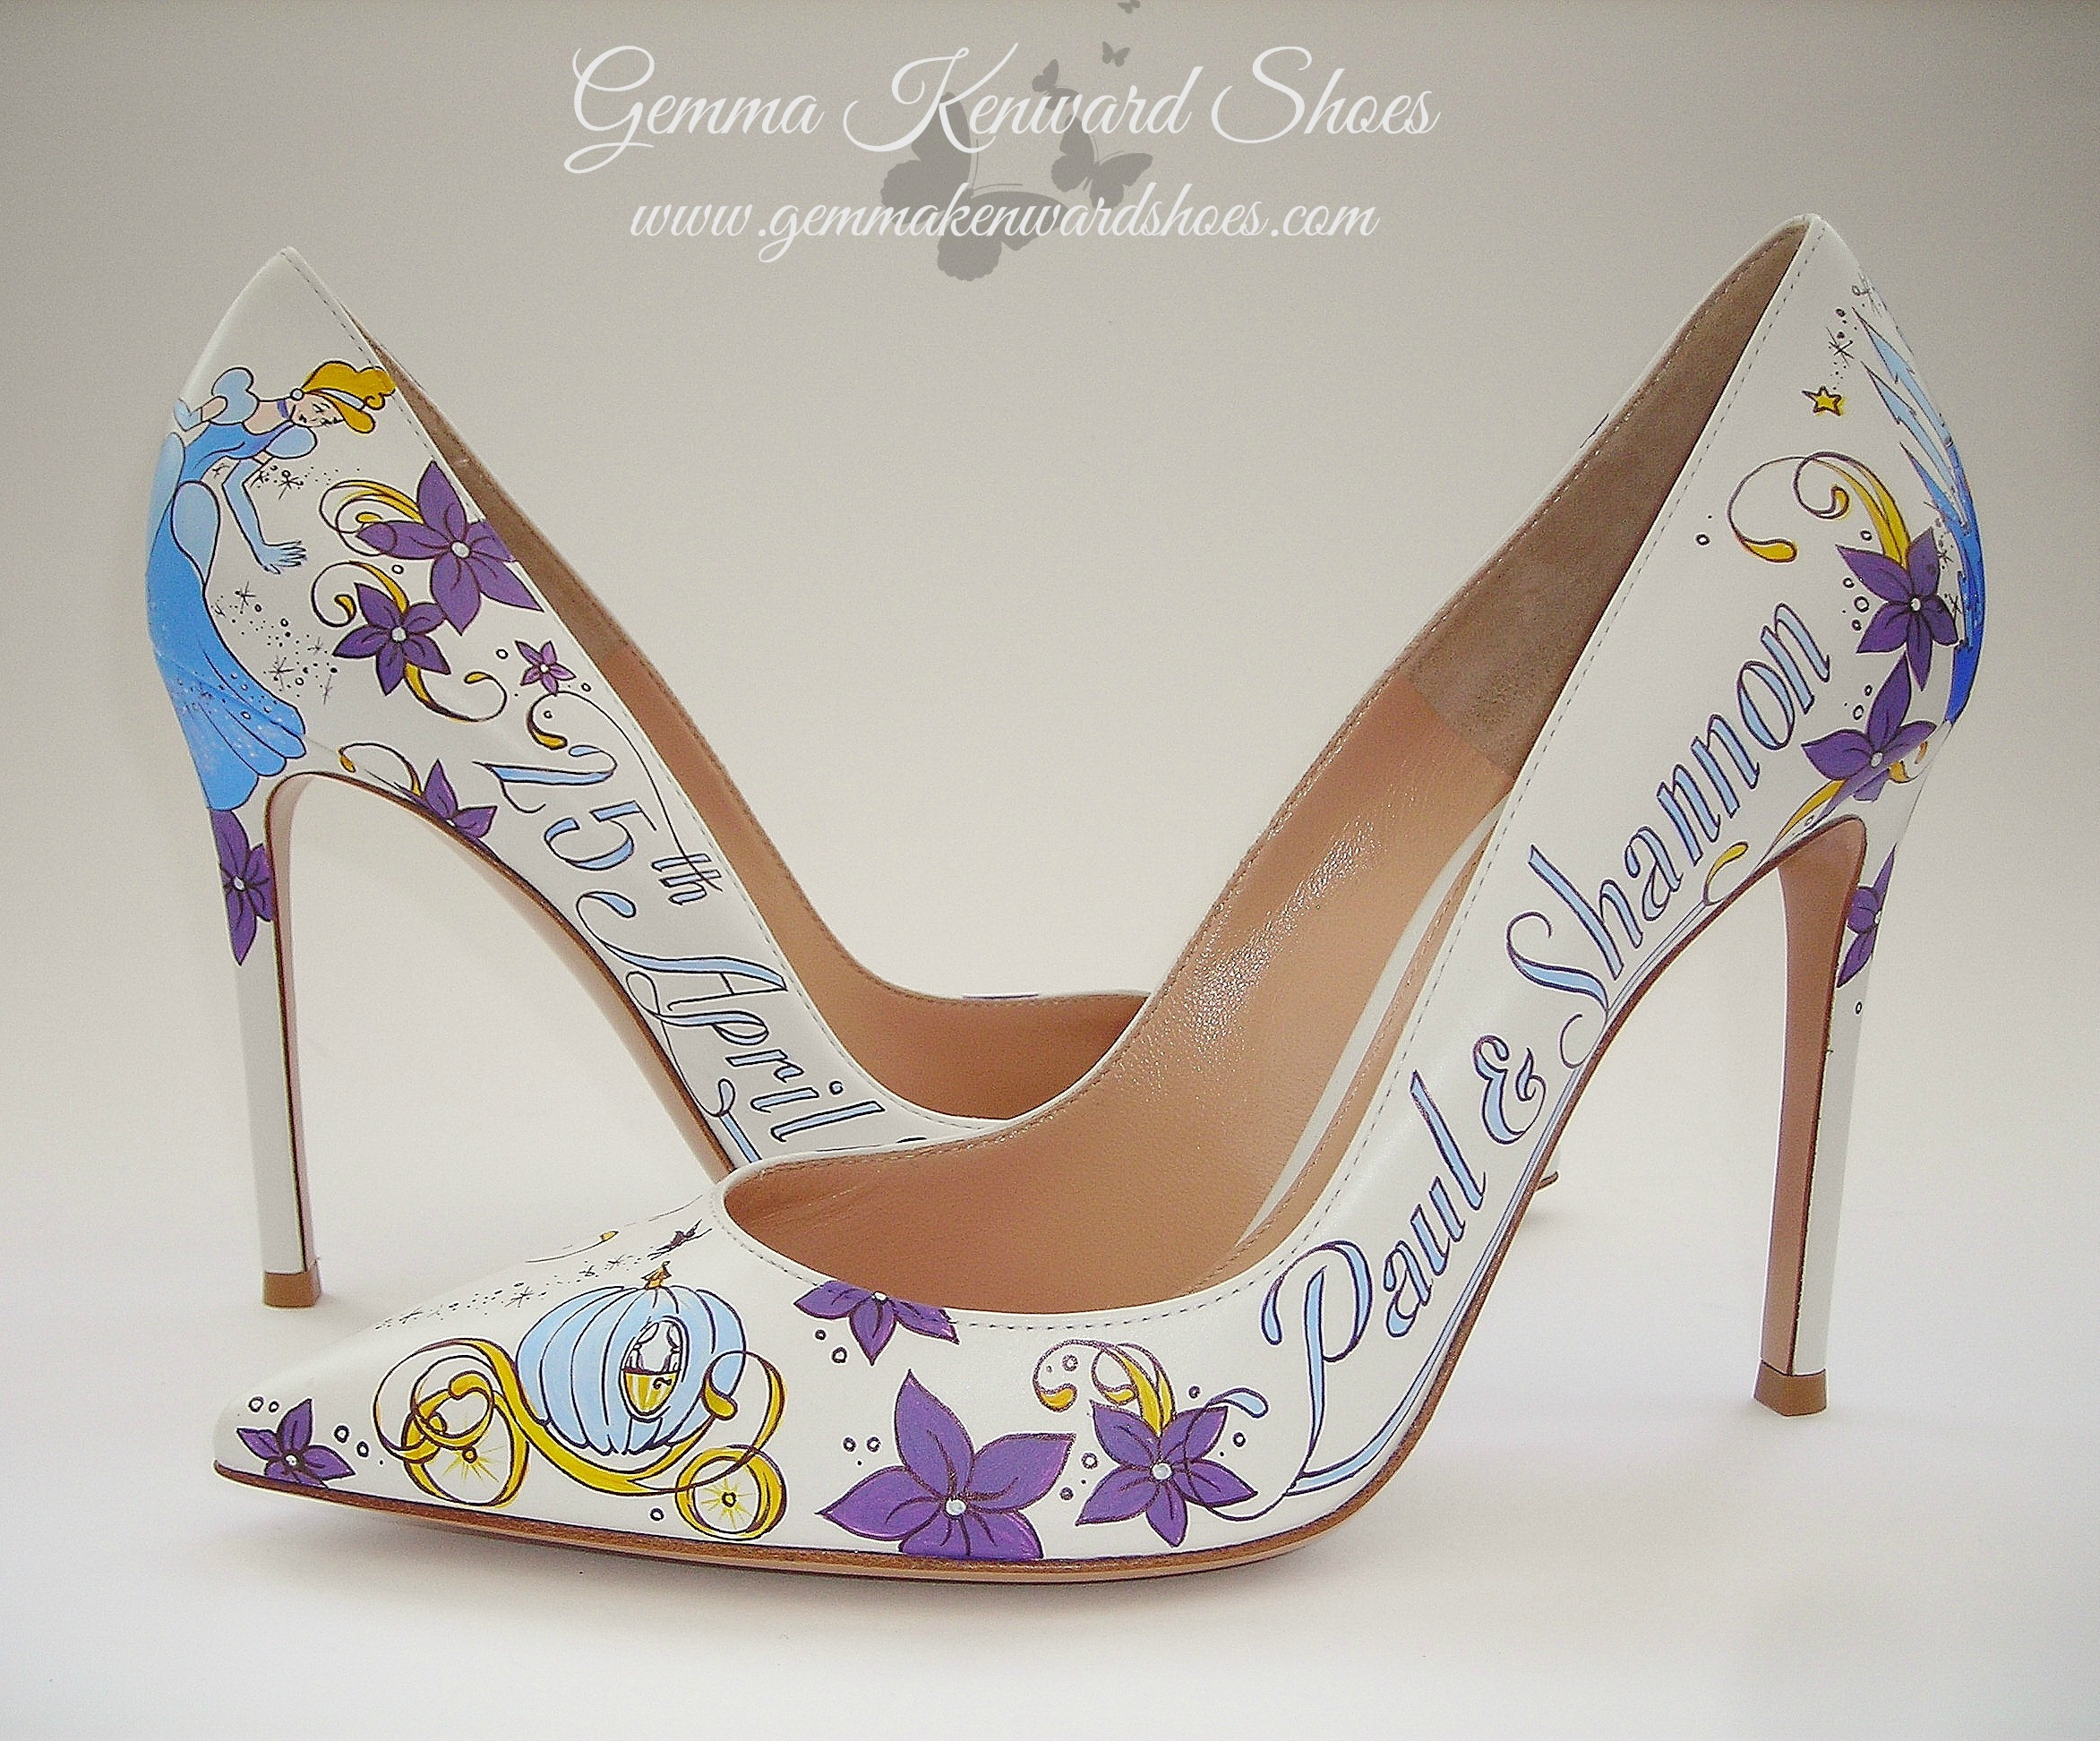 Custom painted bridal shoes with purple flowers and a Disney Theme.